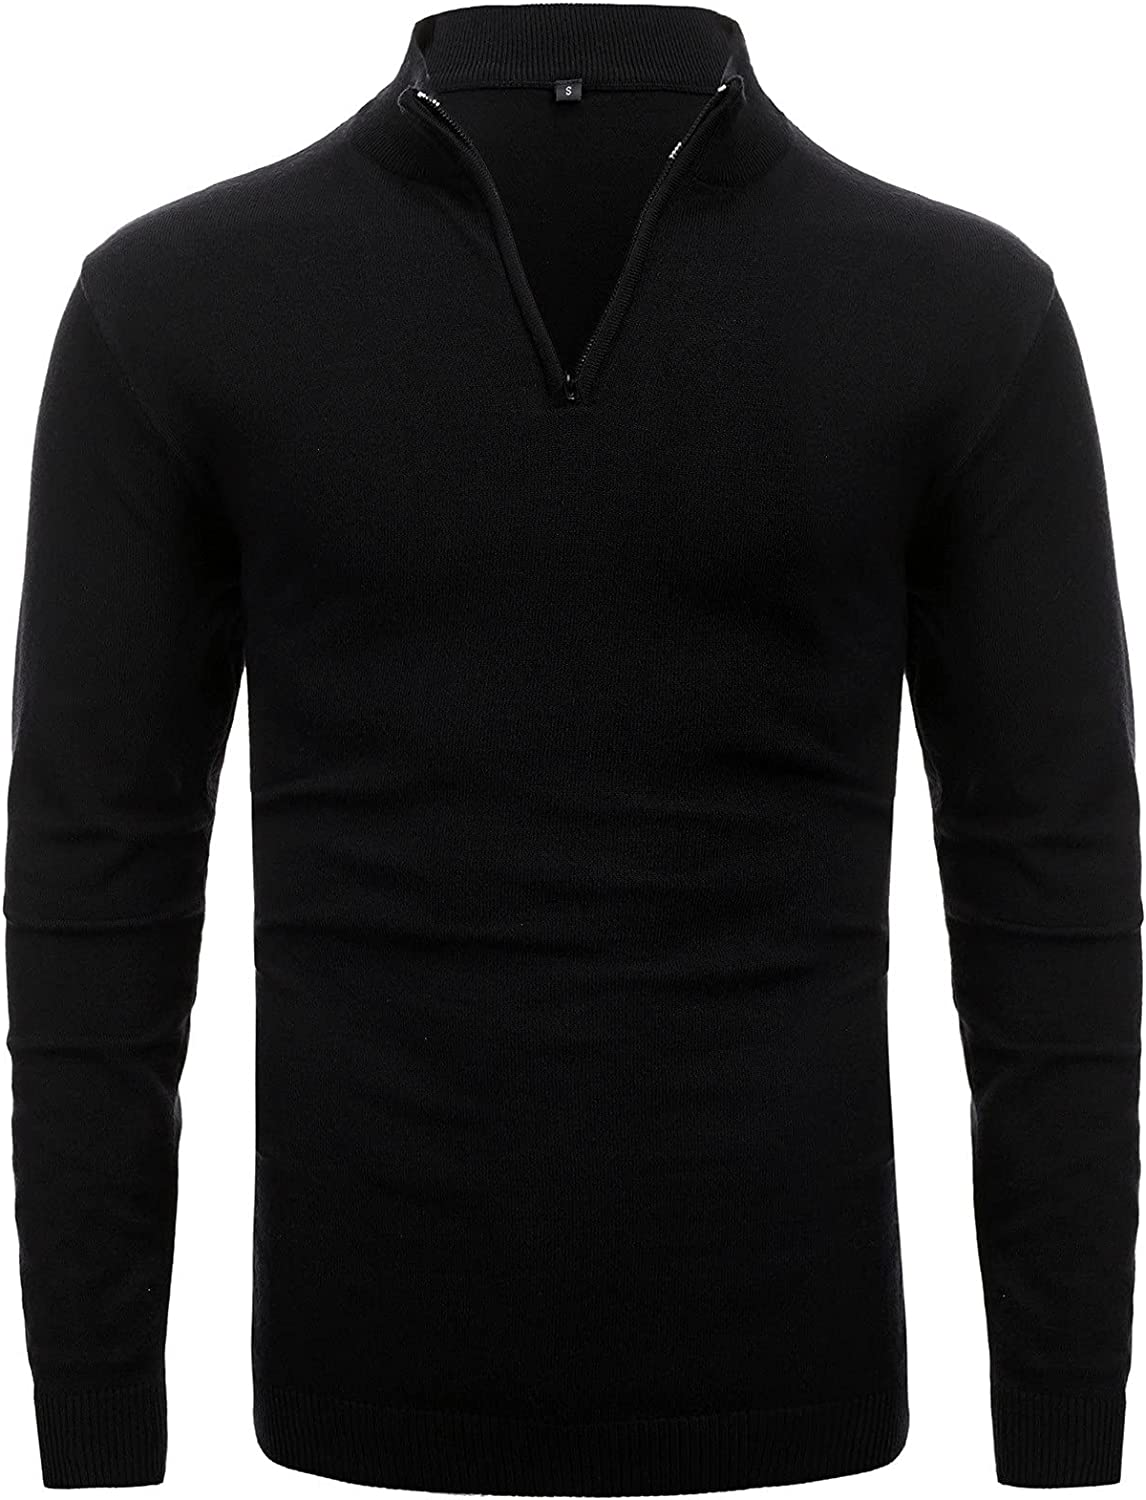 Yhjh Men's Solid Color High-Neck Sweater Zipper Long-Sleeved Slim Fit Turtleneck Soft Comfy Polo Autumn Winter Pullover